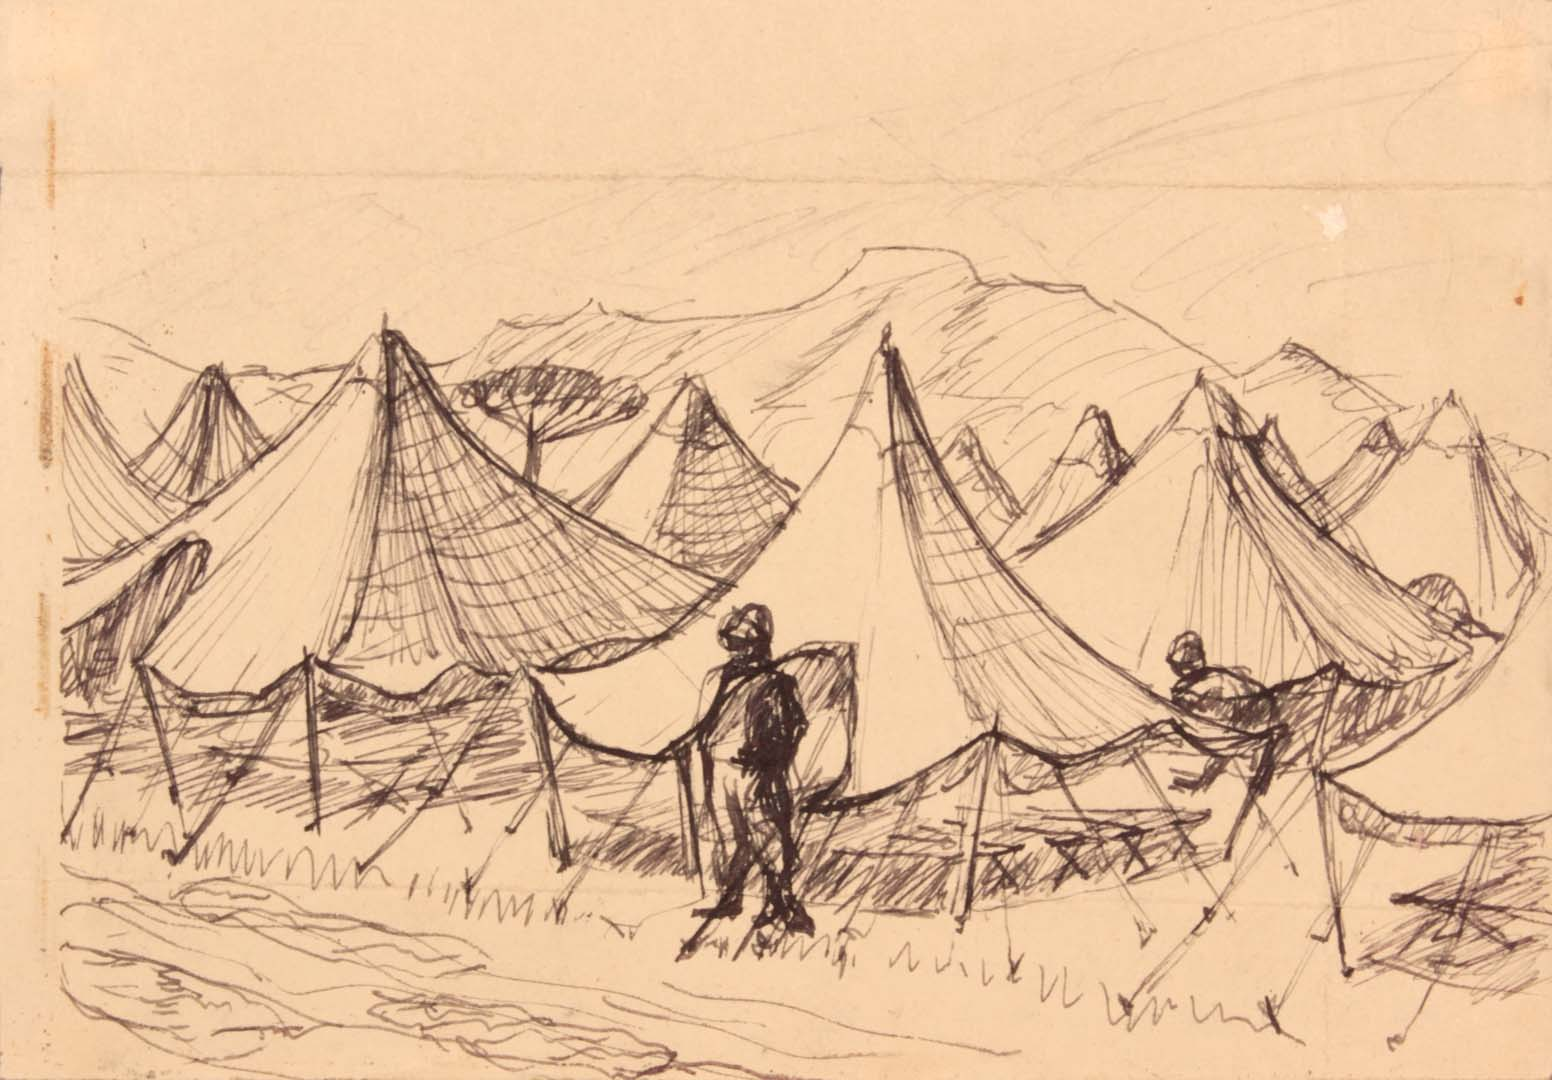 """1944 Caserta Italy VII (Tents) Pen and Ink on Paper 4.50"""" x 6.3125"""""""